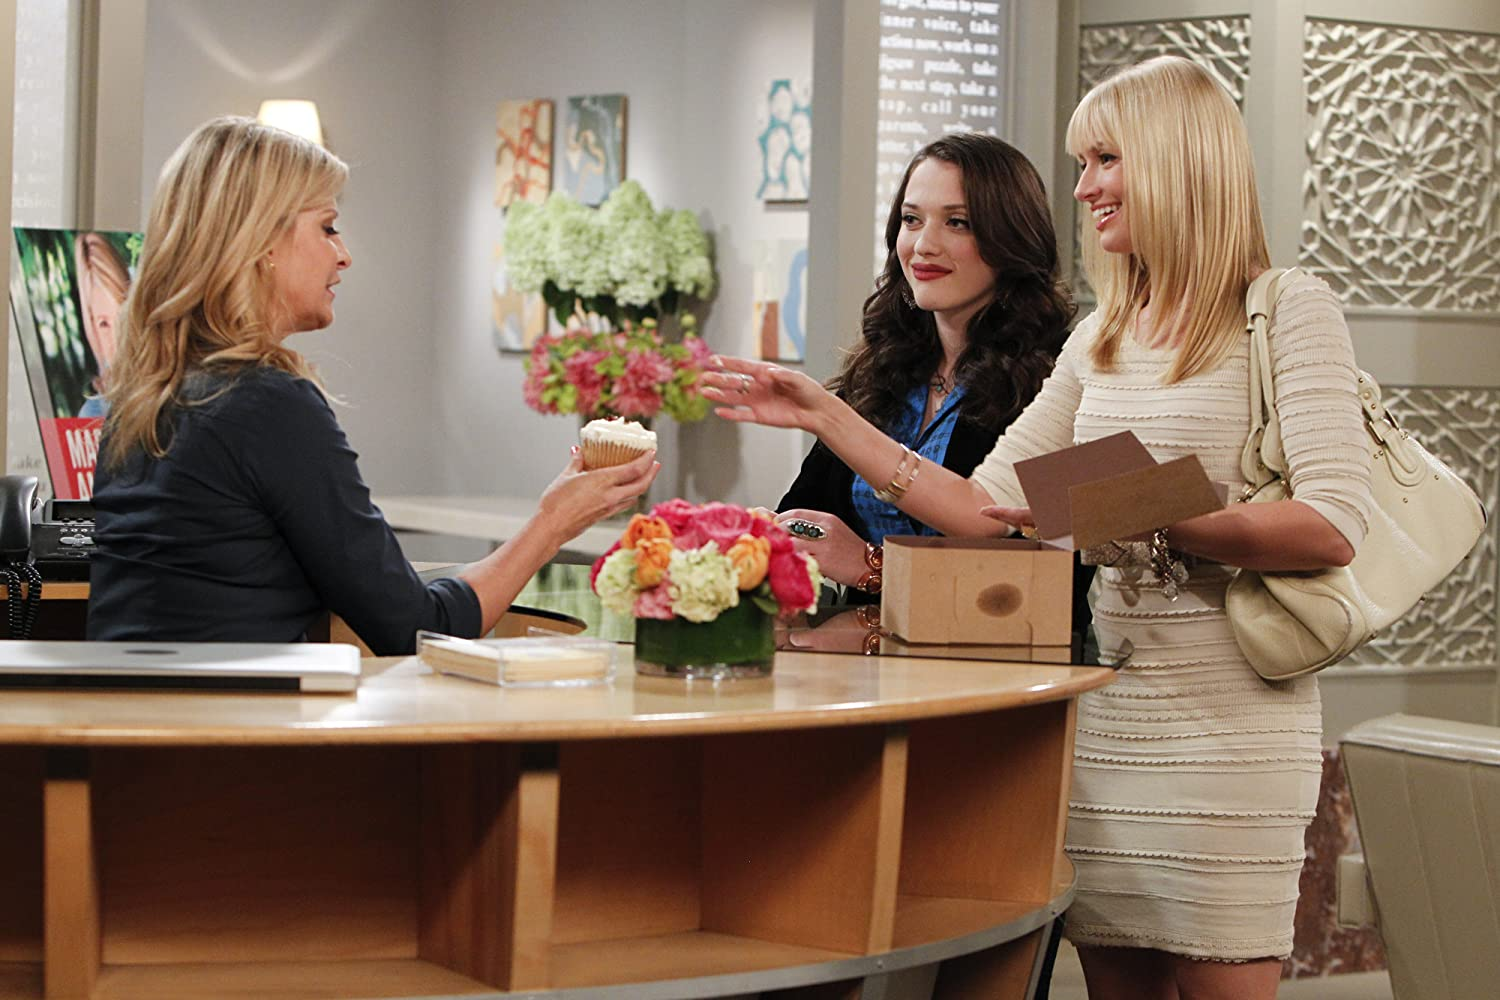 Allison Dunbar, Kat Dennings, and Beth Behrs in 2 Broke Girls (2011)